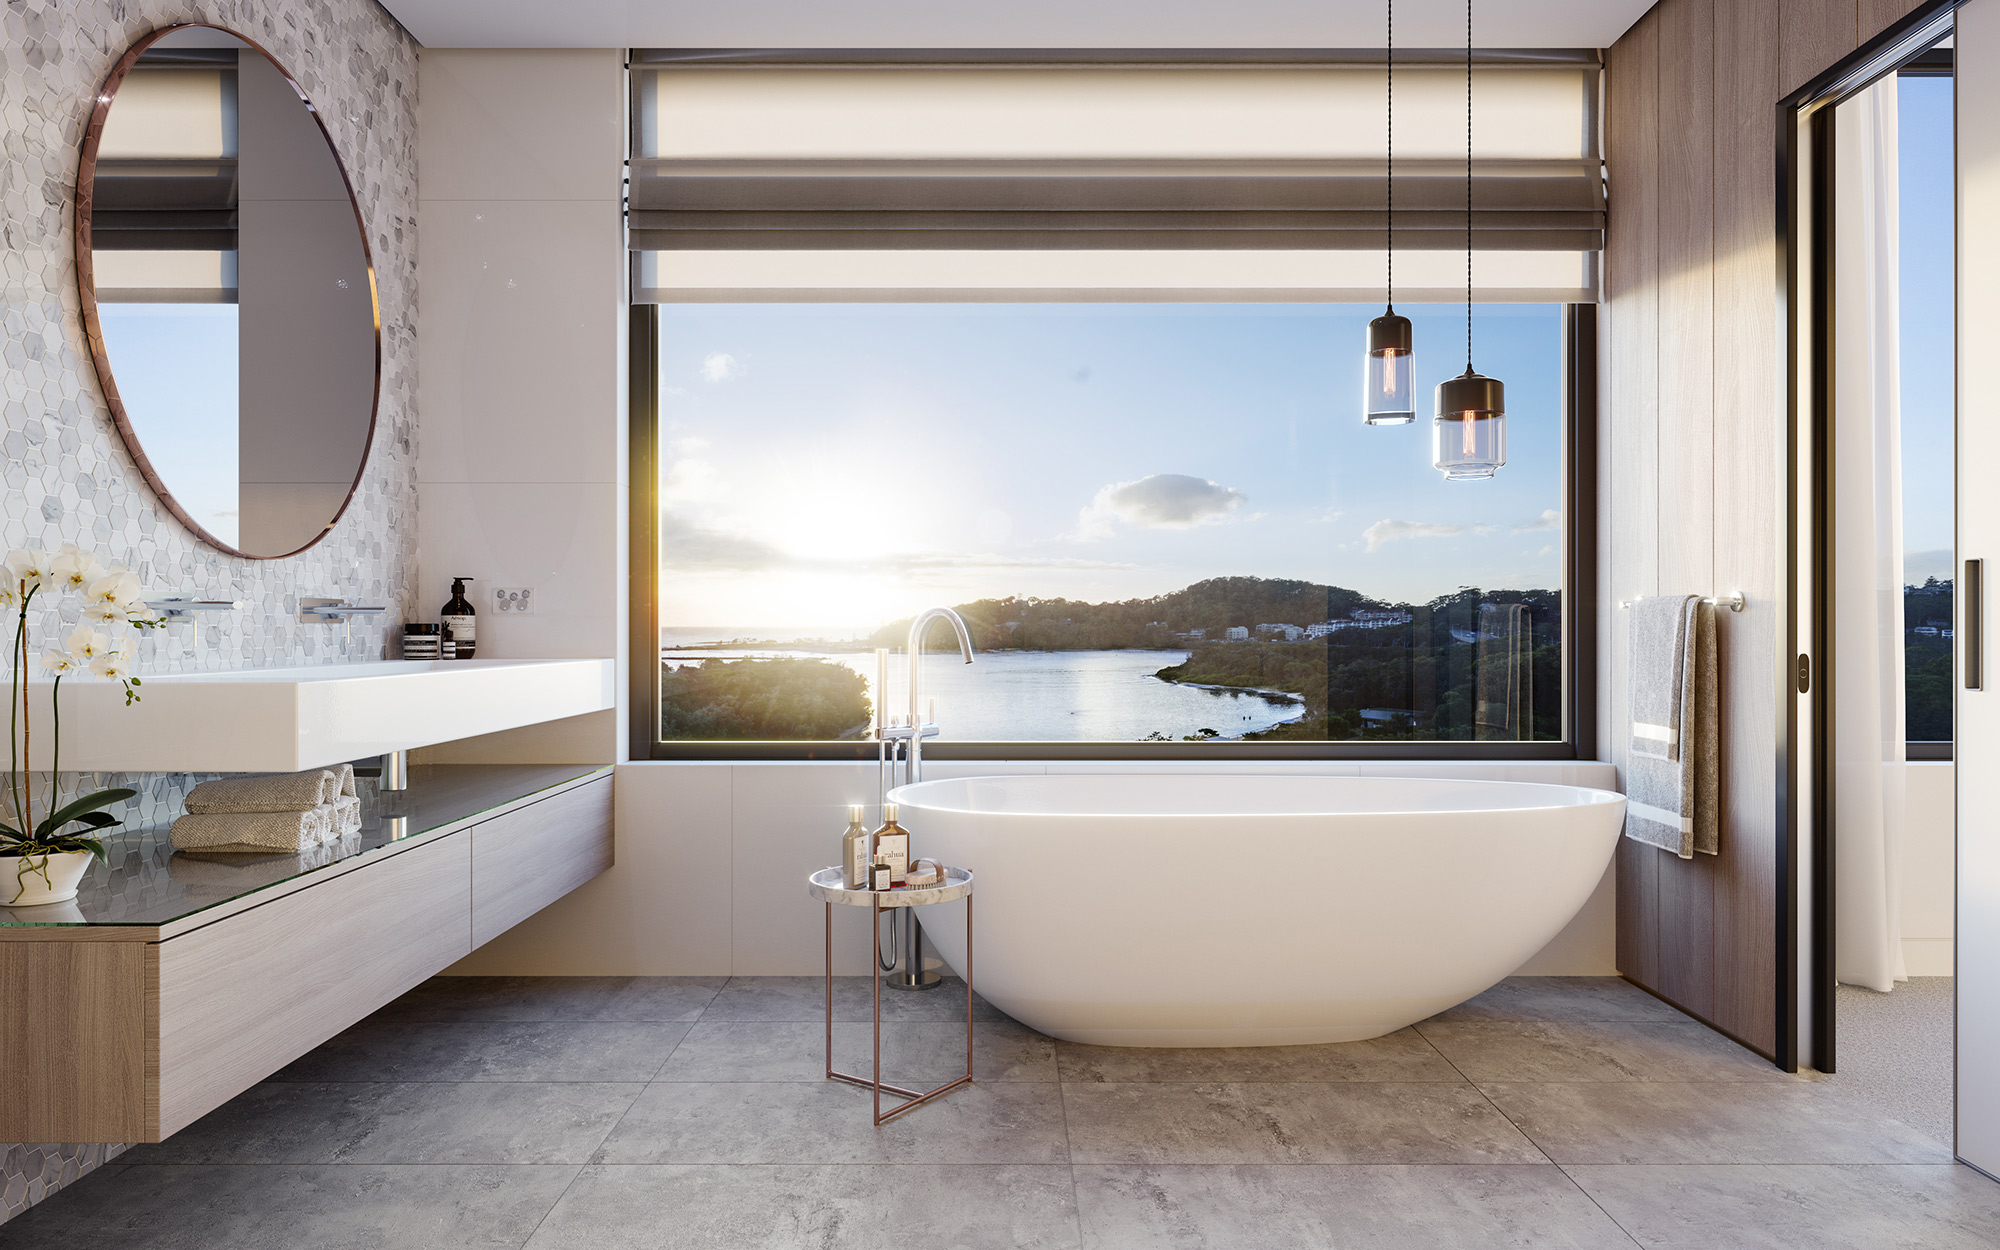 JPEG_Ensuite_Unit_8_947_Gold_Coast_HWY_Palm_Beach_V2_3d_Render_by_Volume_Vision.jpg